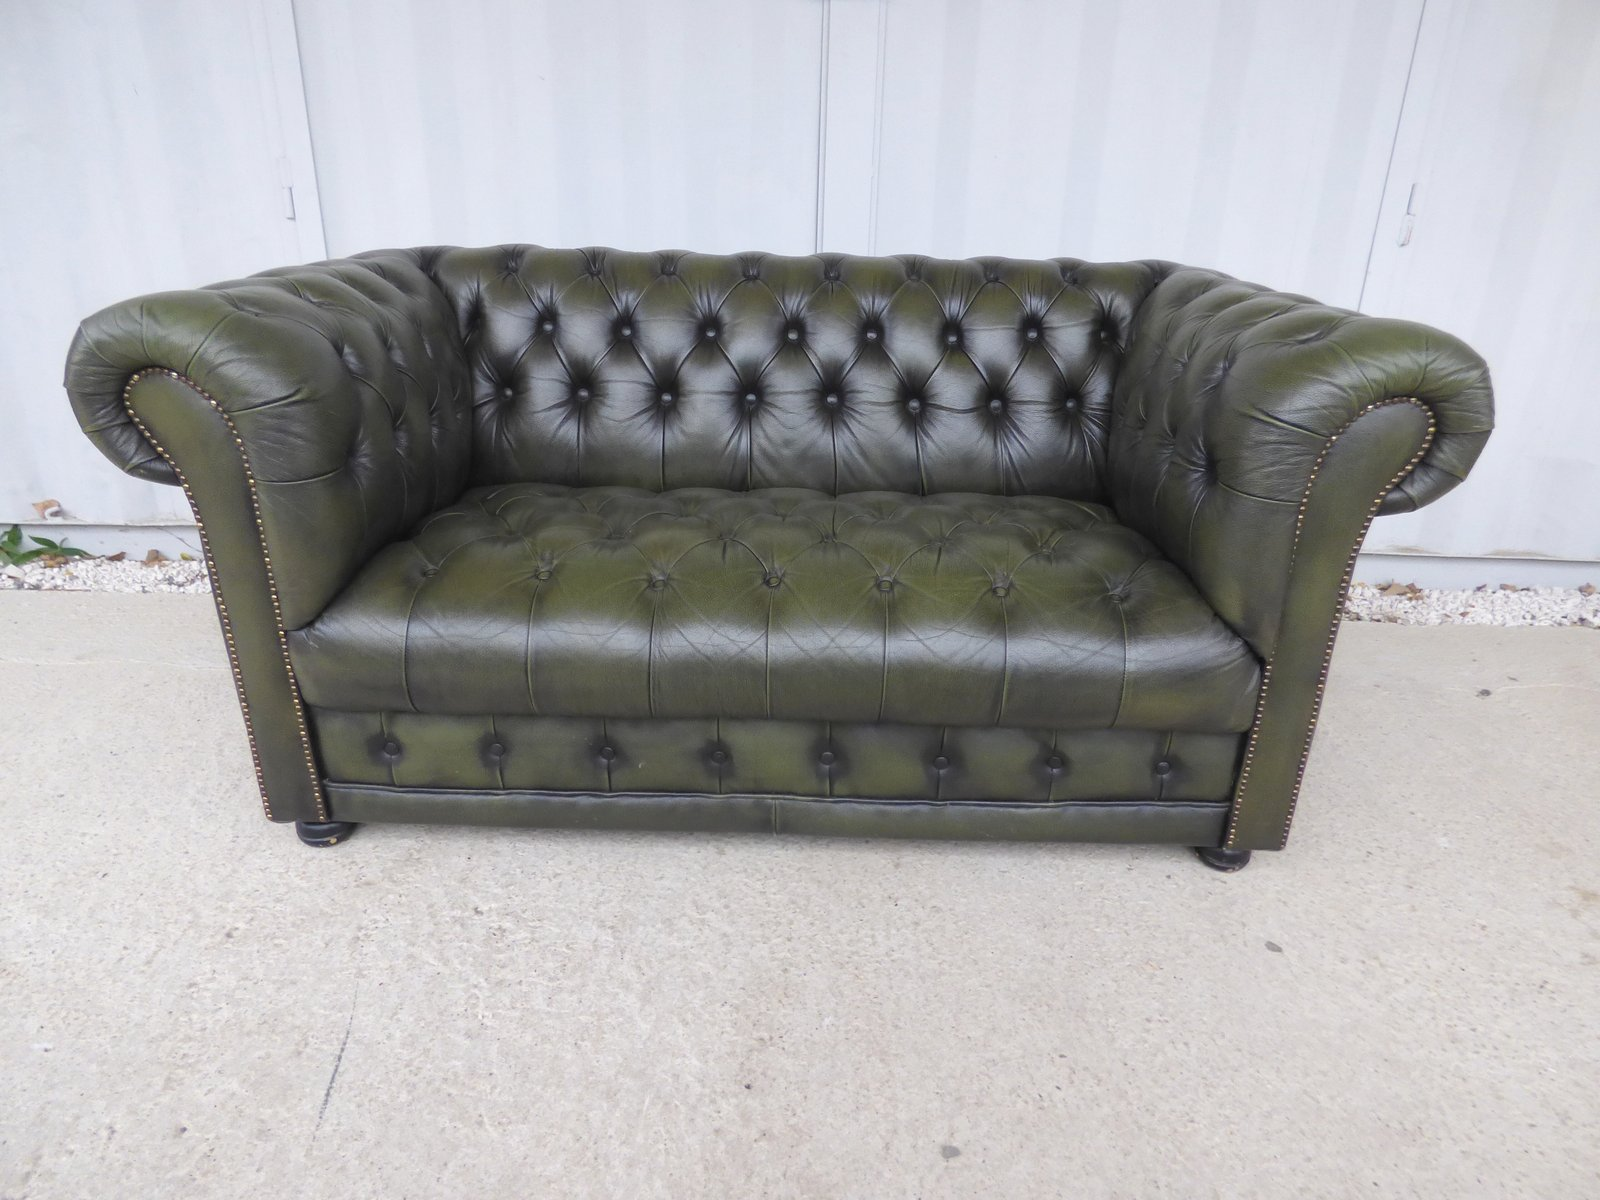 Vintage French Chesterfield Sofa 1970s for sale at Pamono